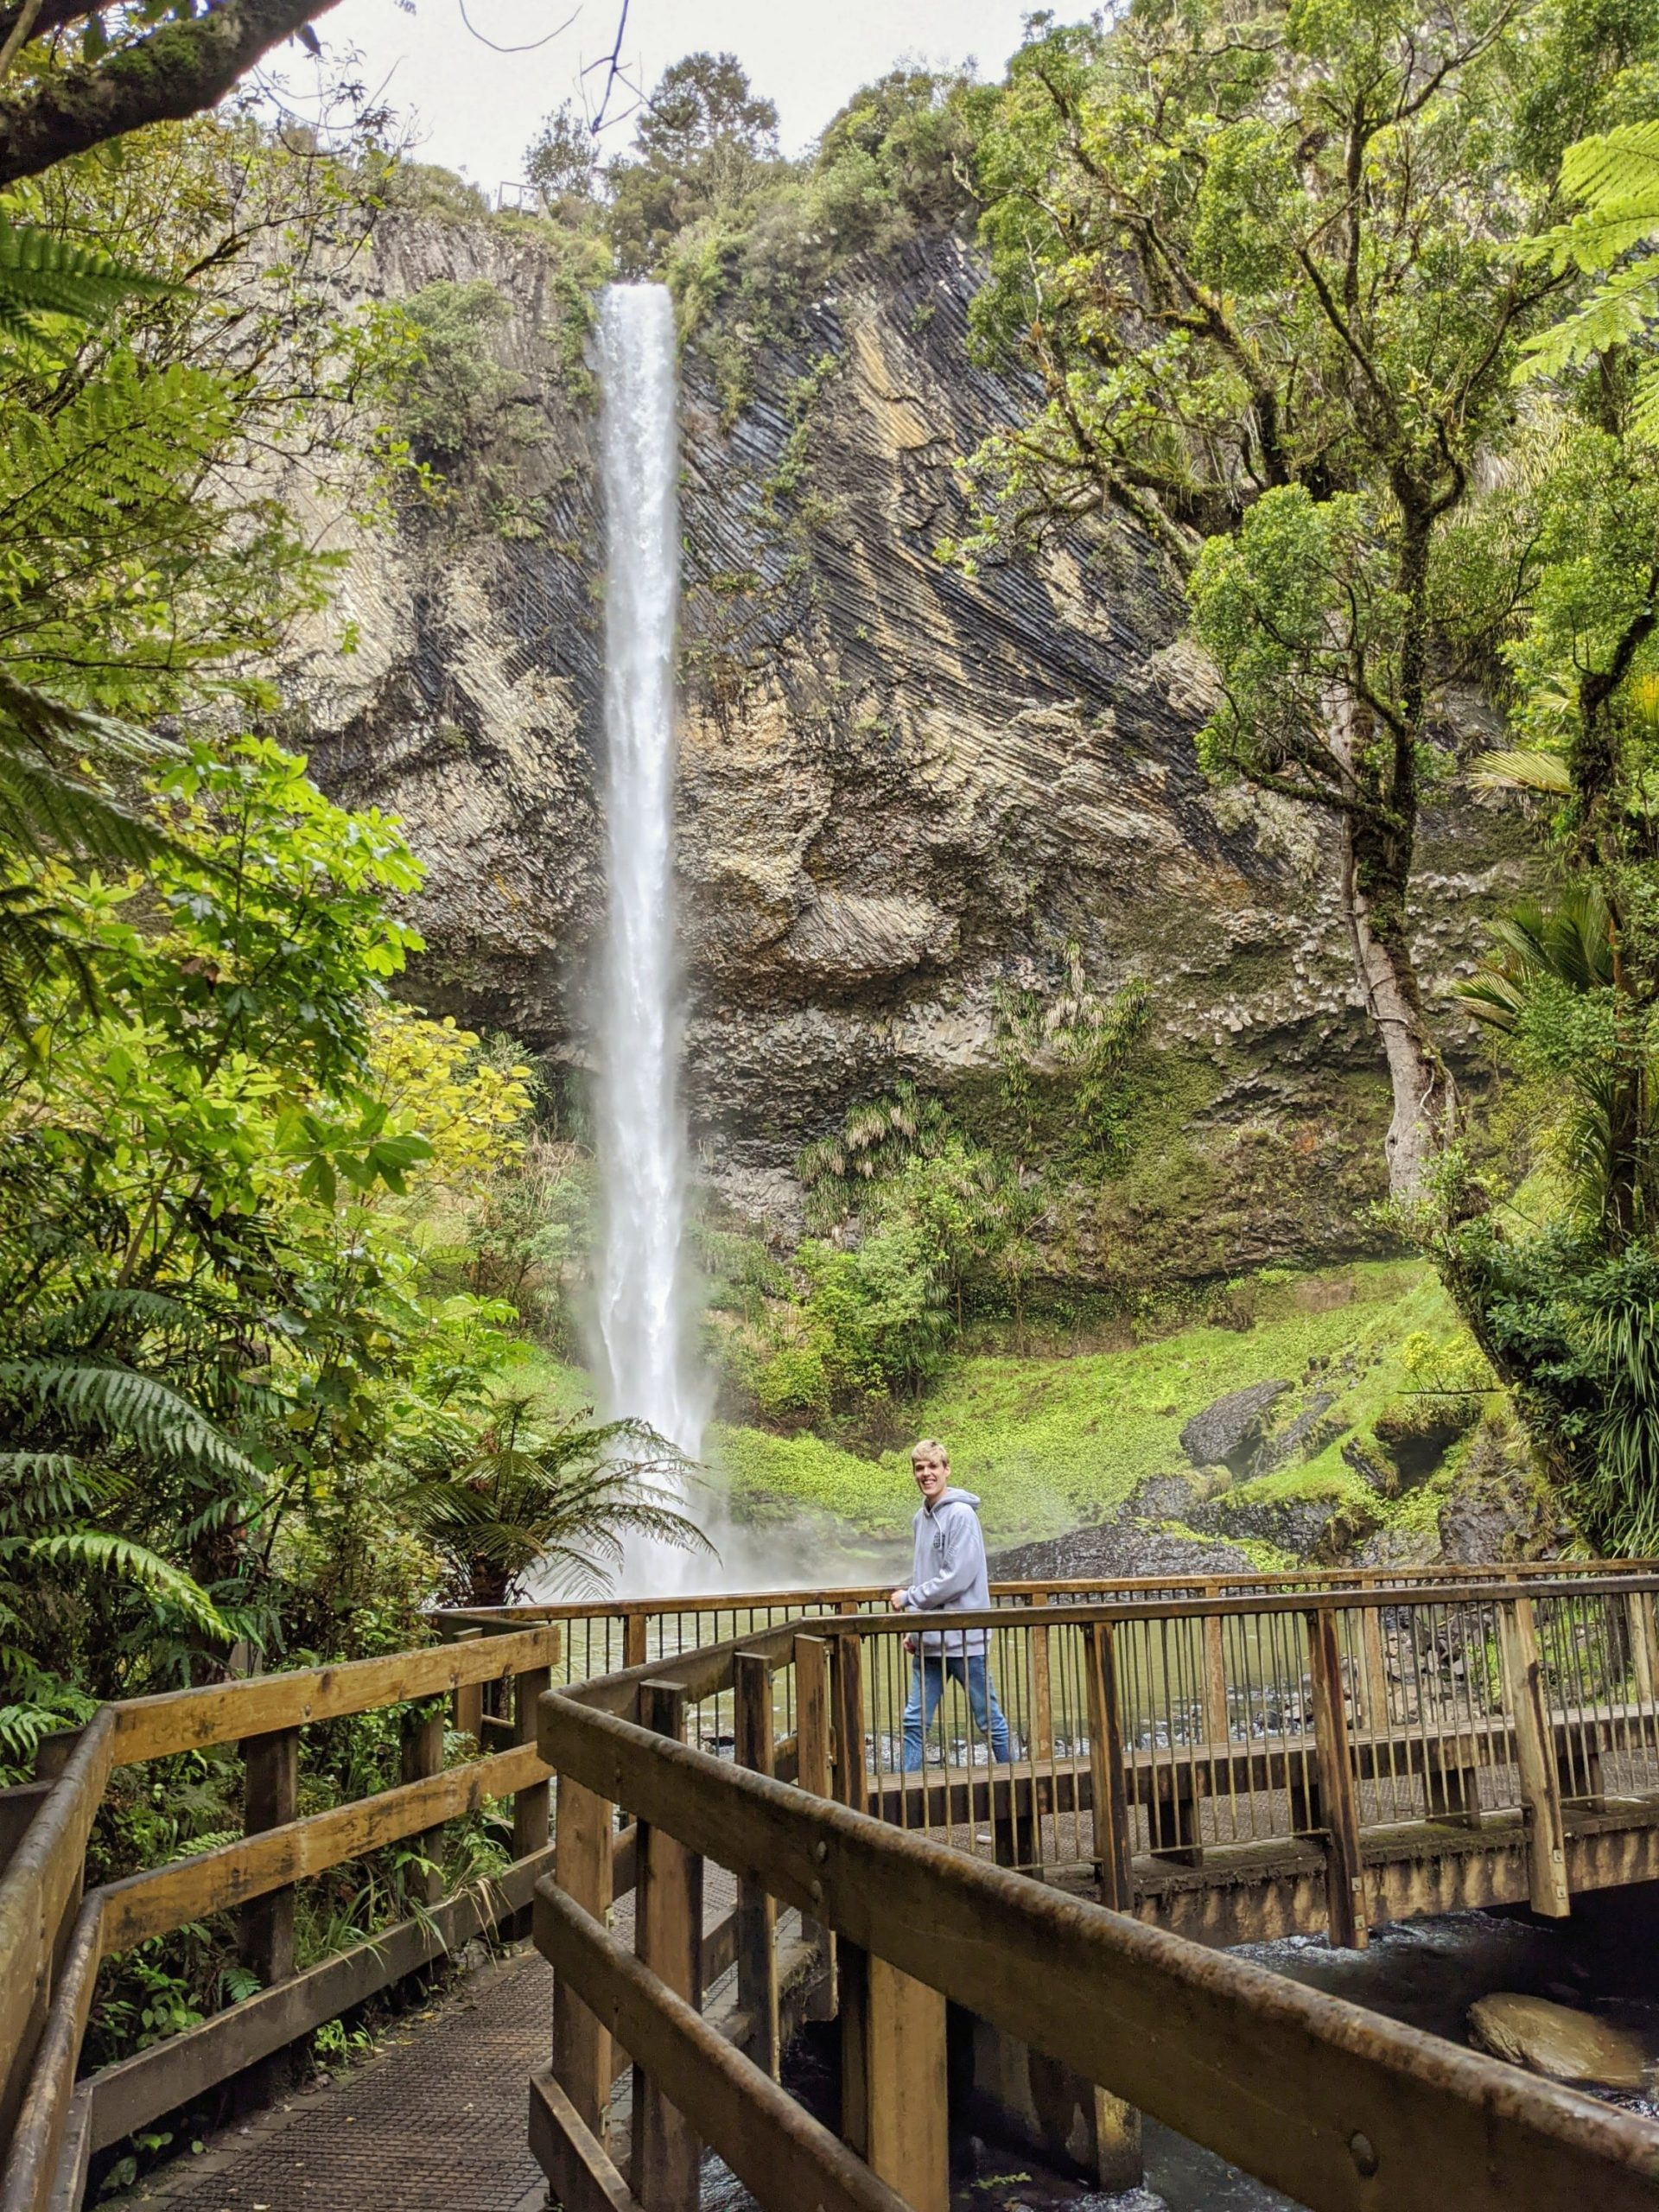 Bridal Veii Falls - the highlight of my day trip to Raglan and Hamilton from Auckland